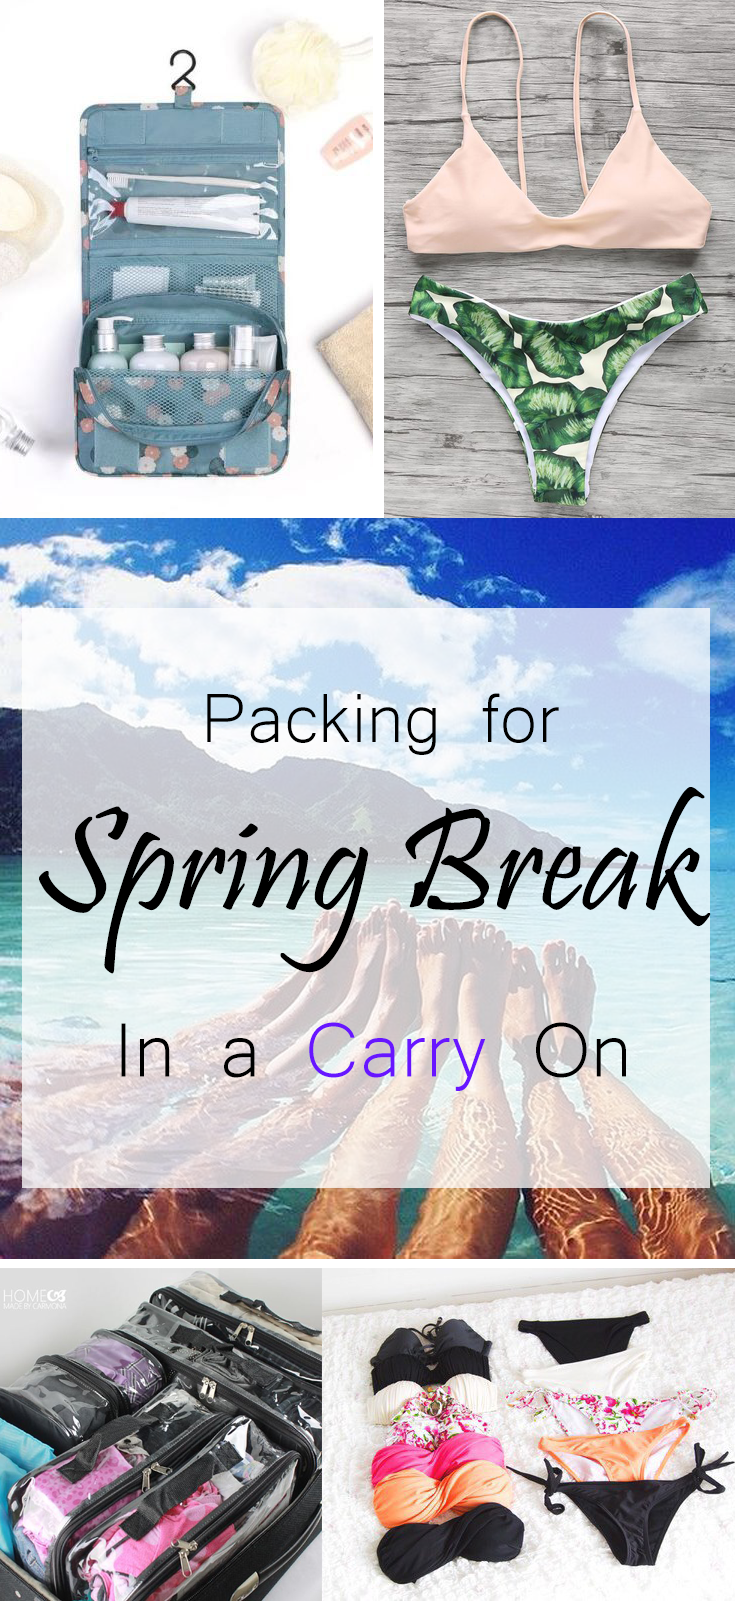 Packing for Spring Break in a Carry On